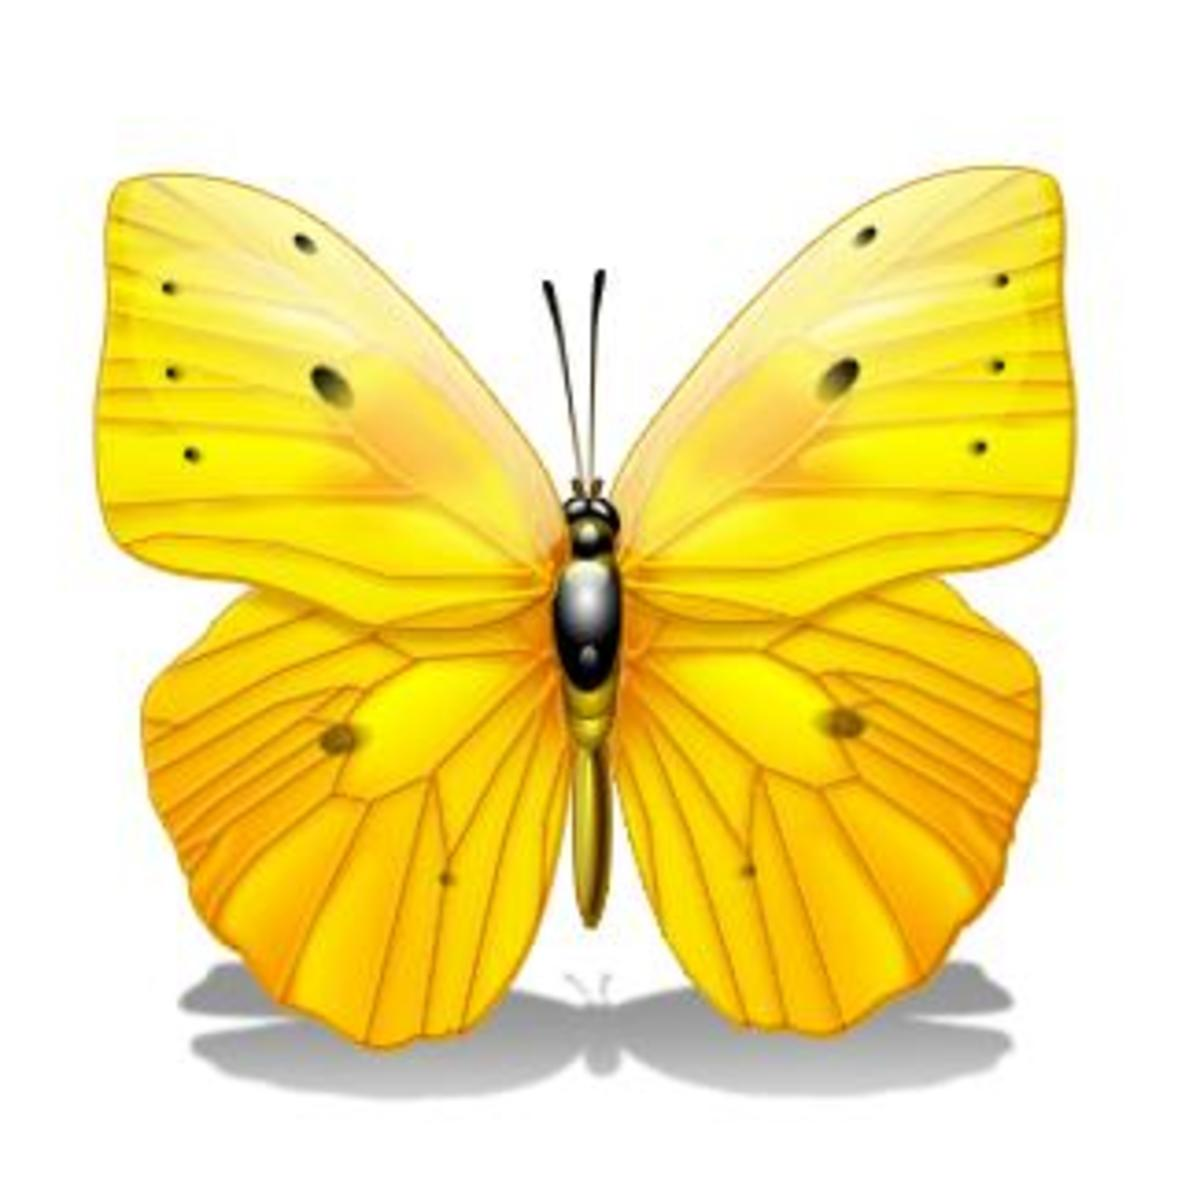 Yellow and Orange Butterfly with Wings Spread